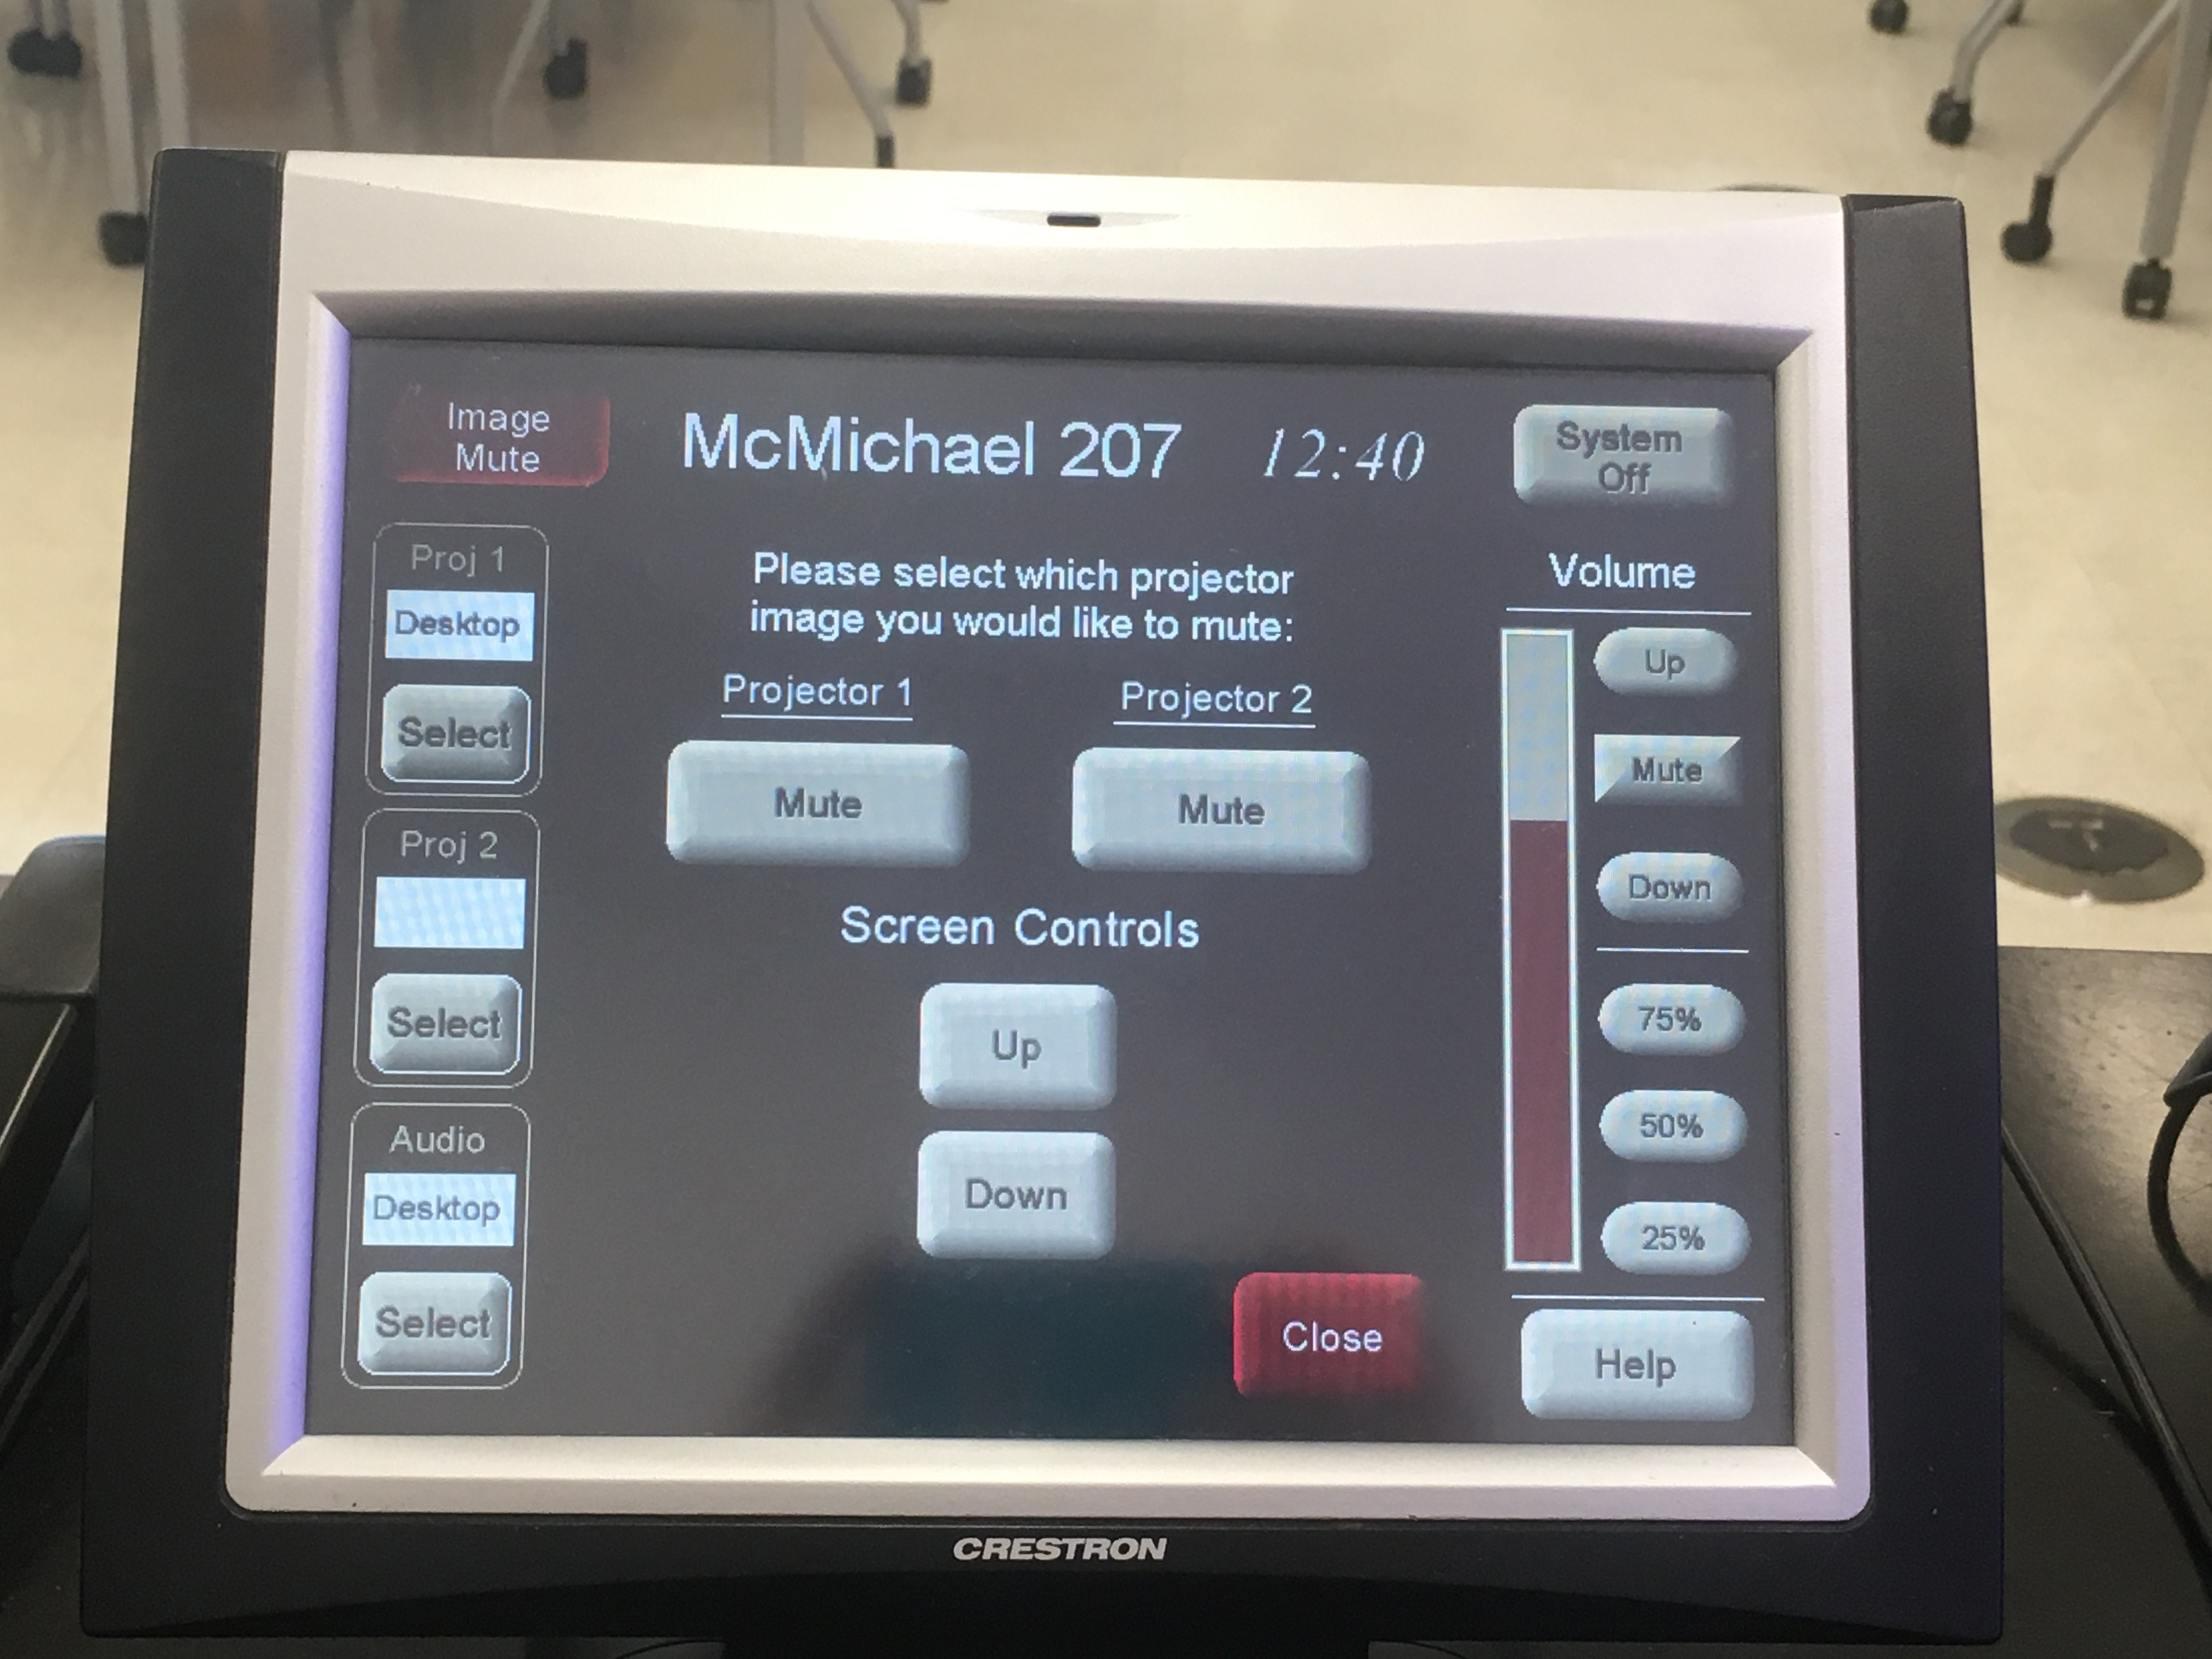 Photo of the crestron control touch panel with the the image mute option selected